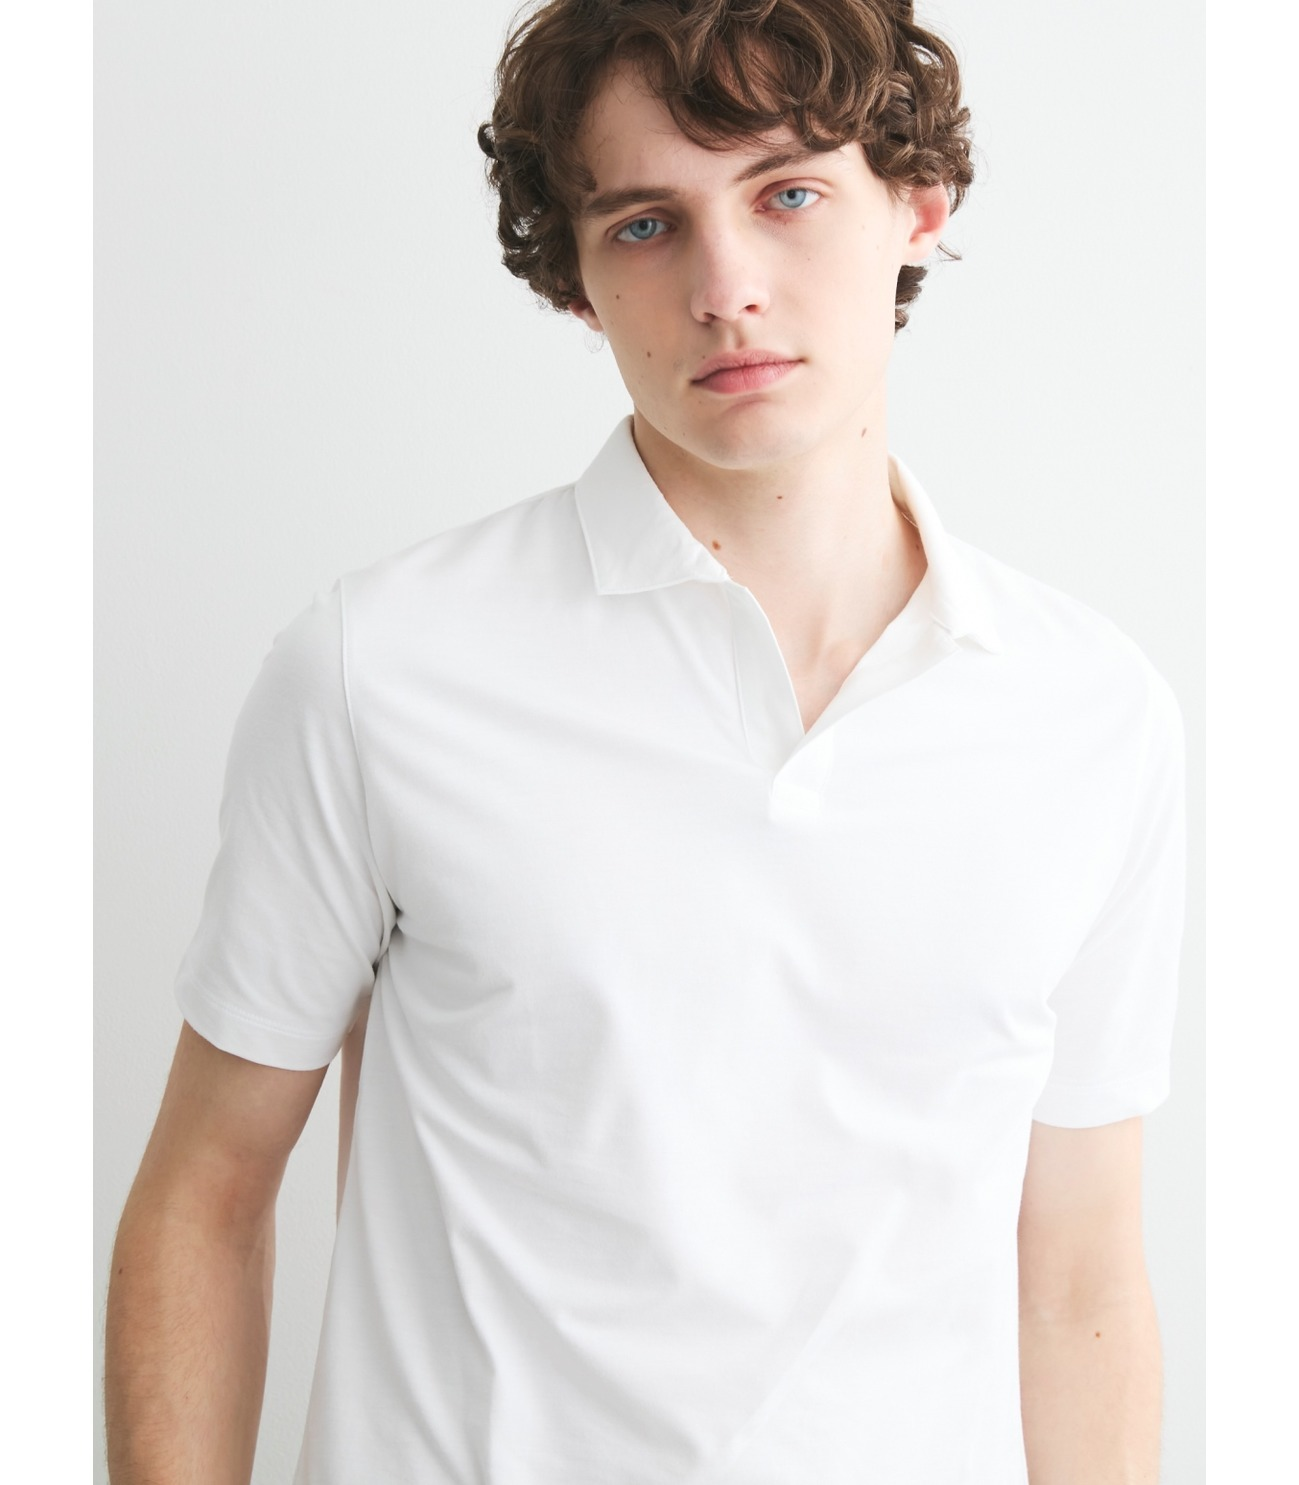 Men's powdery cotton skipper polo 詳細画像 black 6